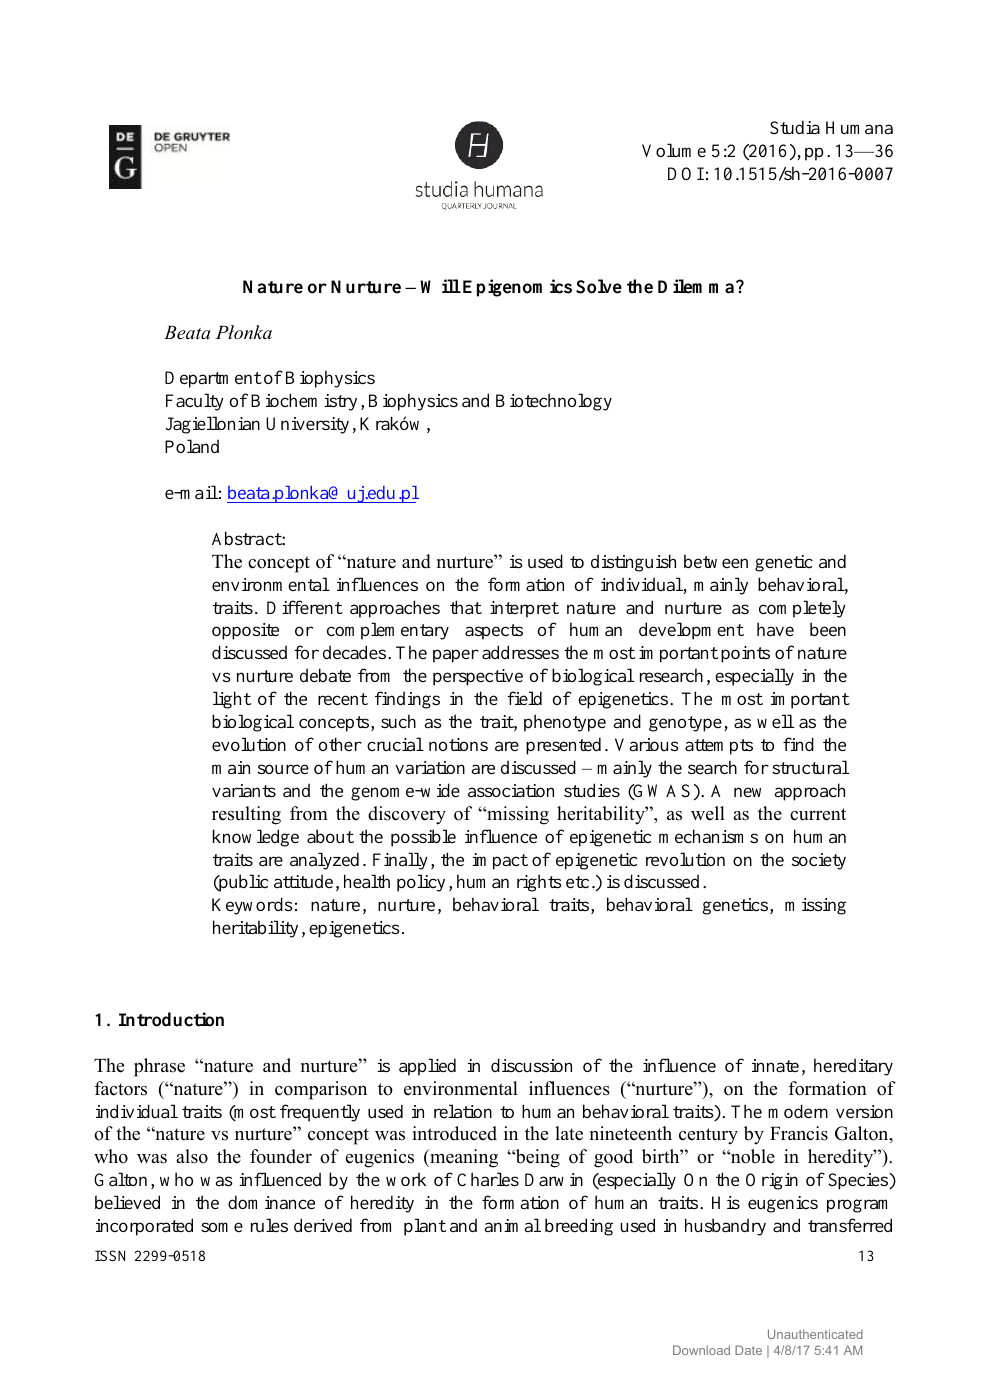 Nature or Nurture – Will Epigenomics Solve the Dilemma? – topic of